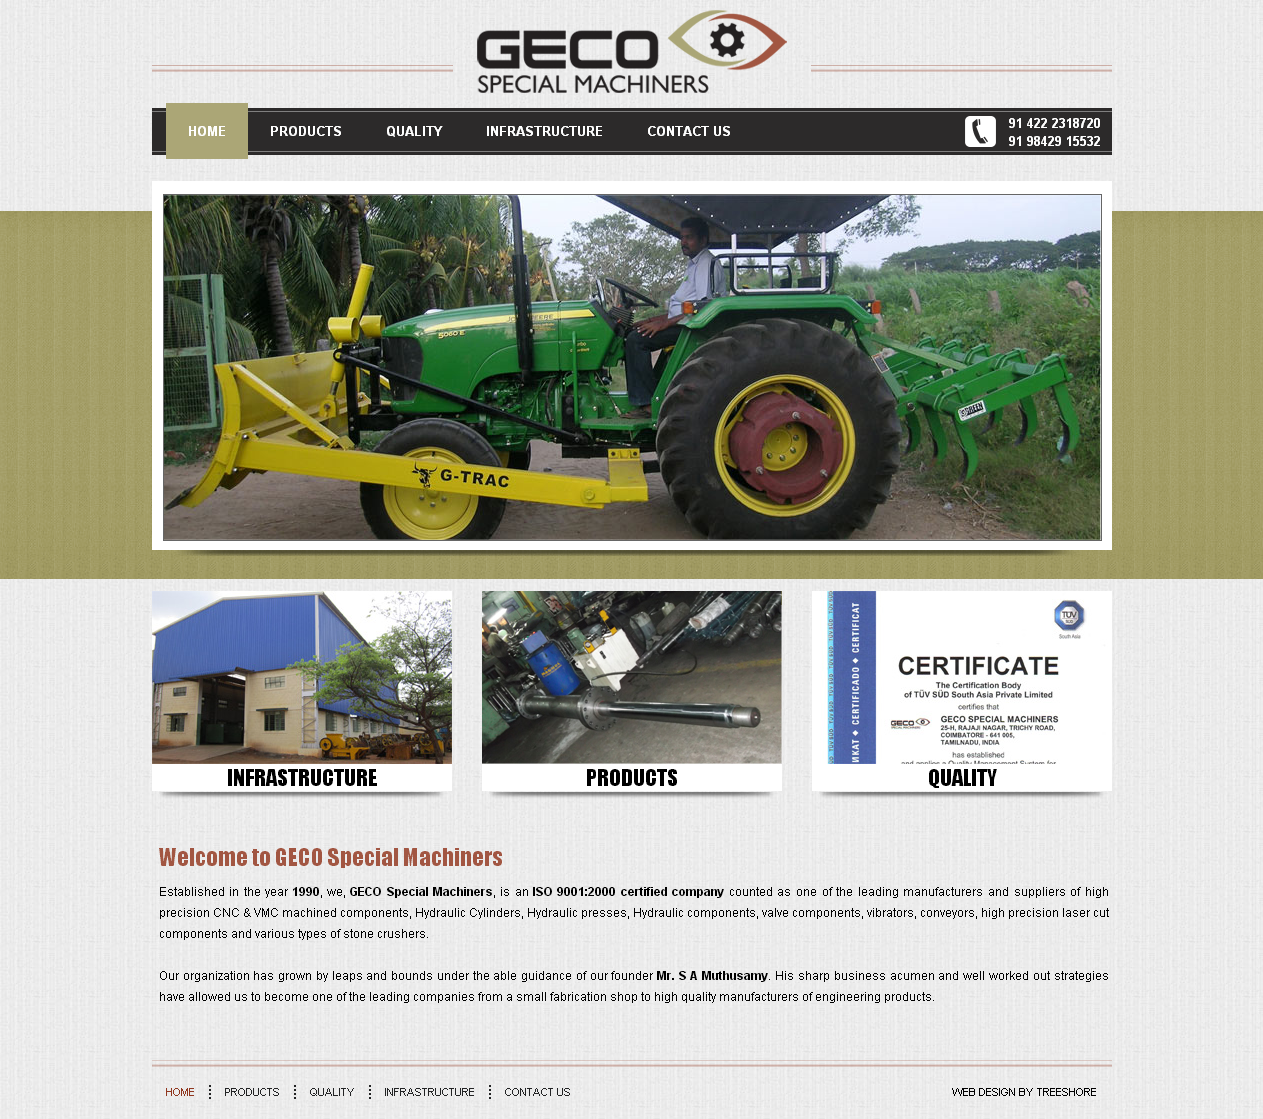 GECO Special Machiners